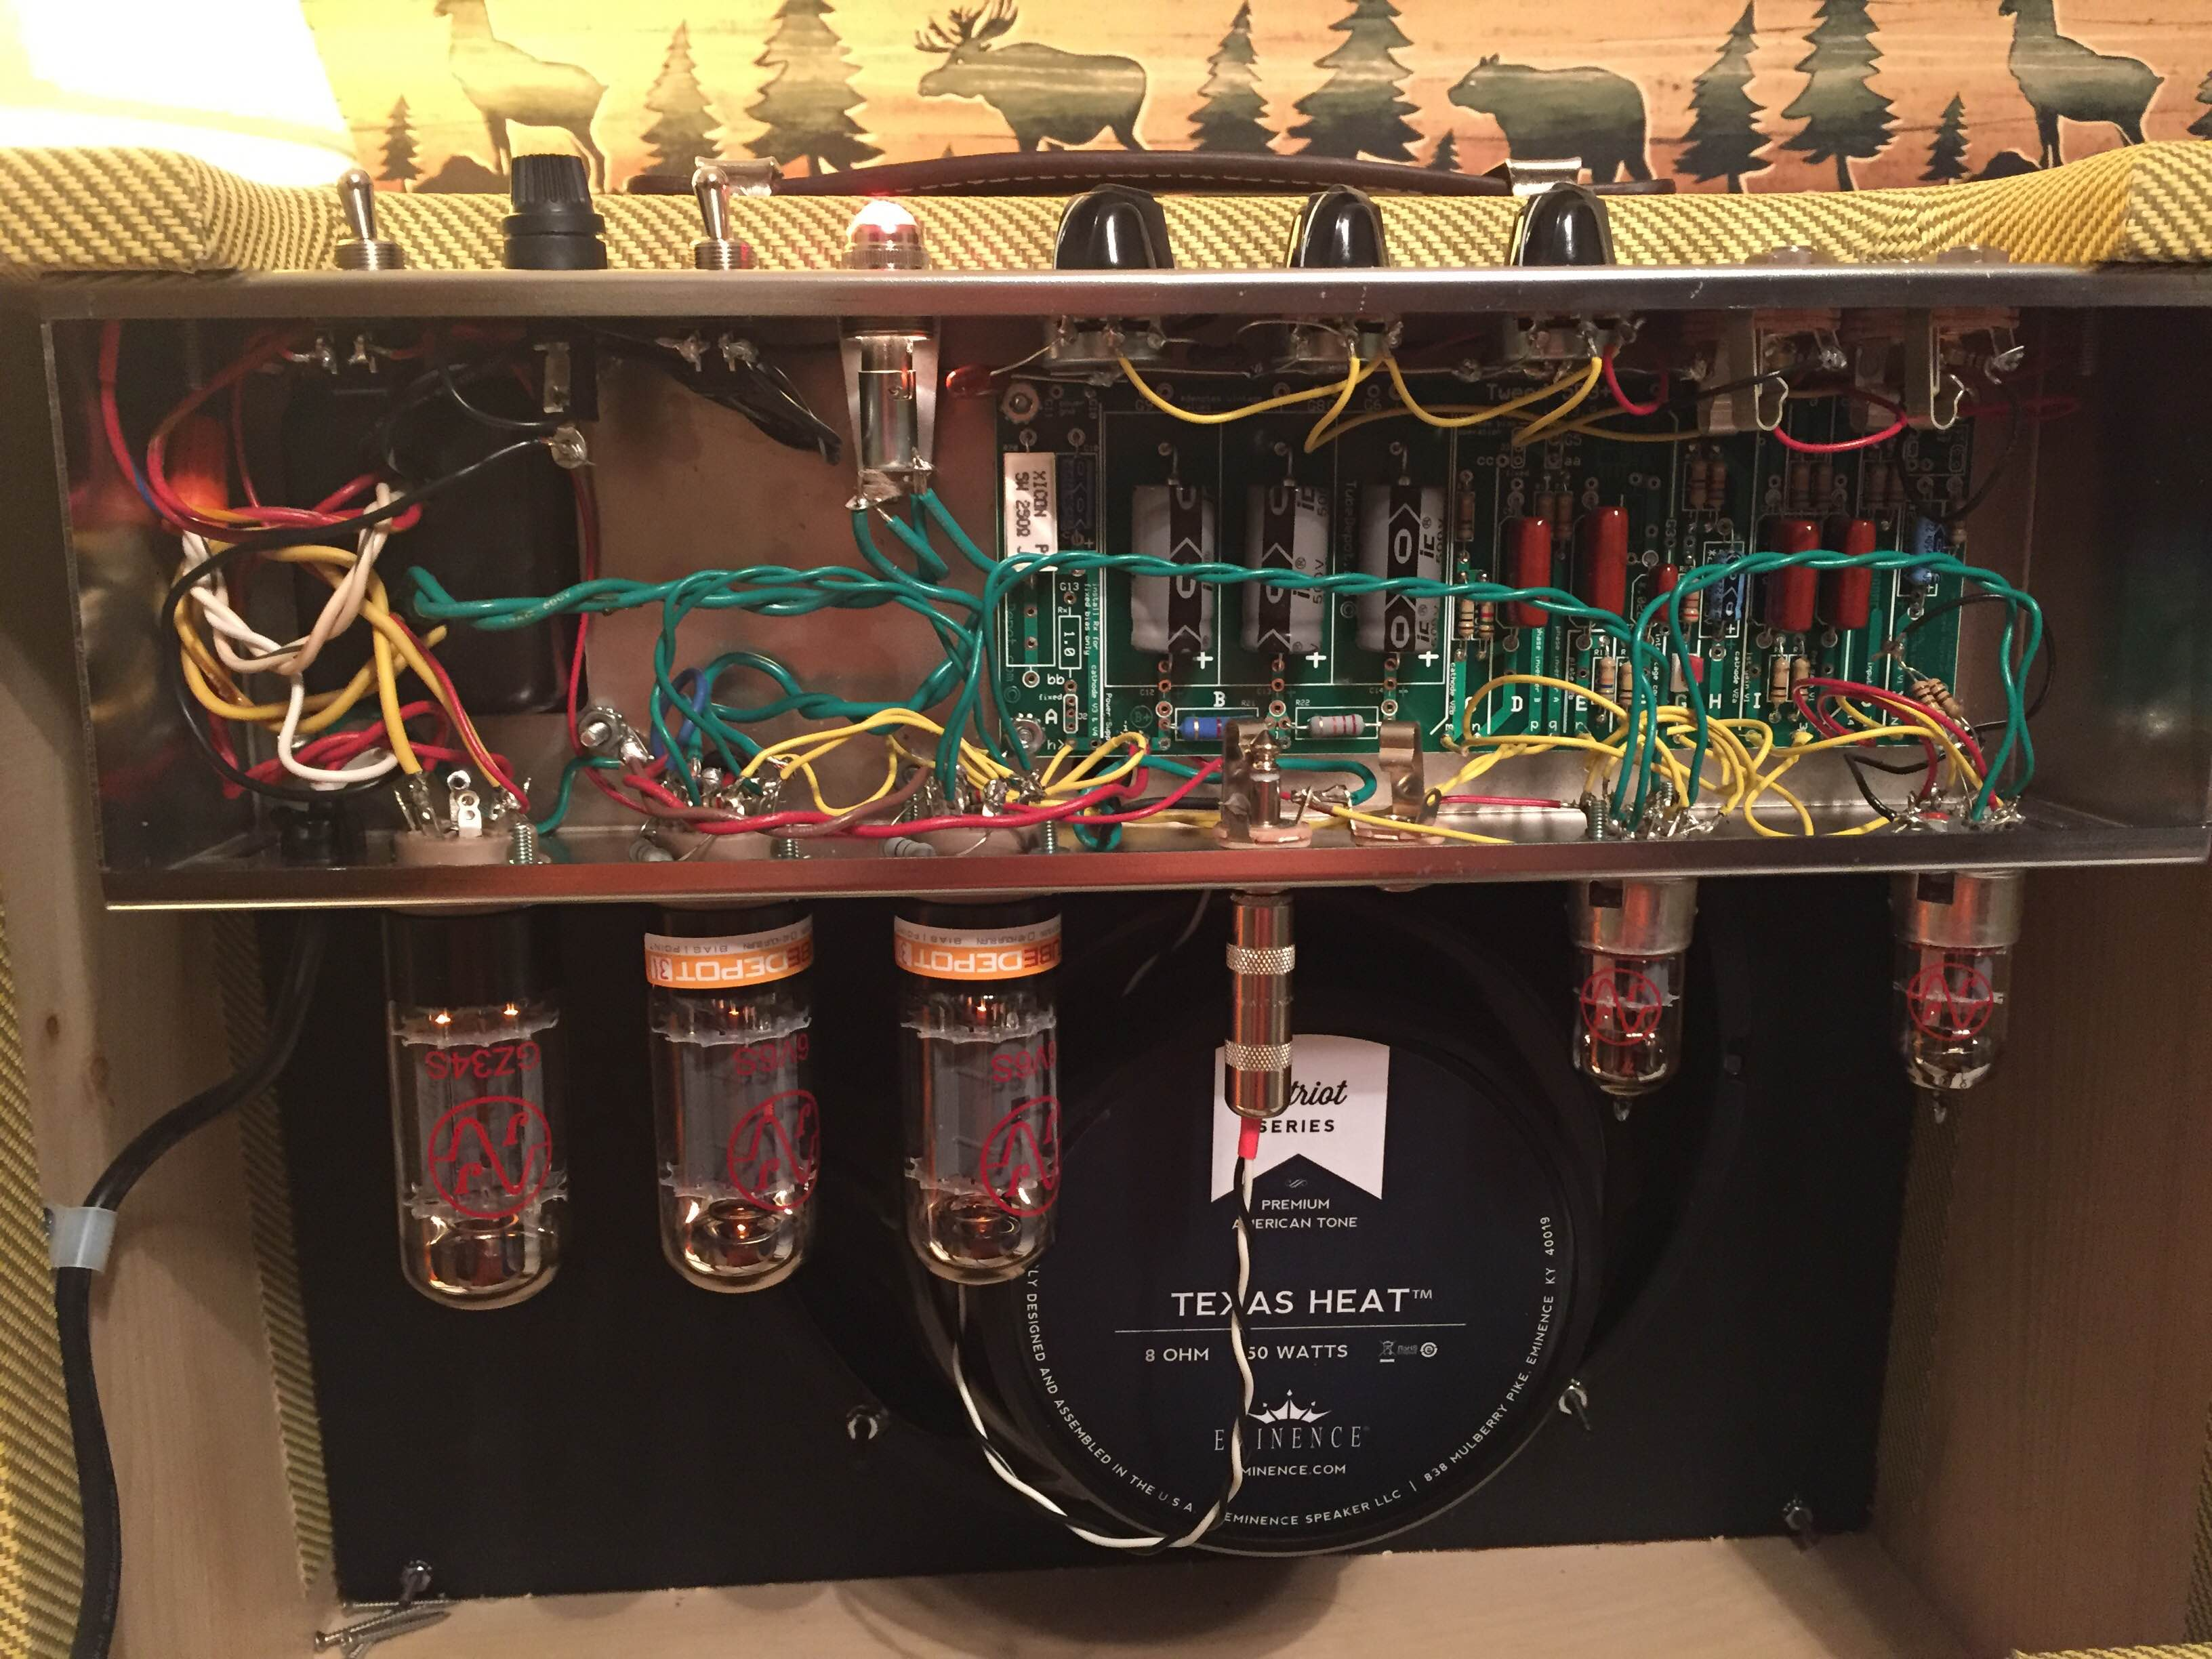 Welcome To Making A Simple Diy Mini Guitar Amplifier Strat And Other Build Him One If He Bought The Kit So I Might Get Do It Again Thanks For Putting These Kits Together Jeff B Buy This Tweed 5e3 Vacuum Tube Amp